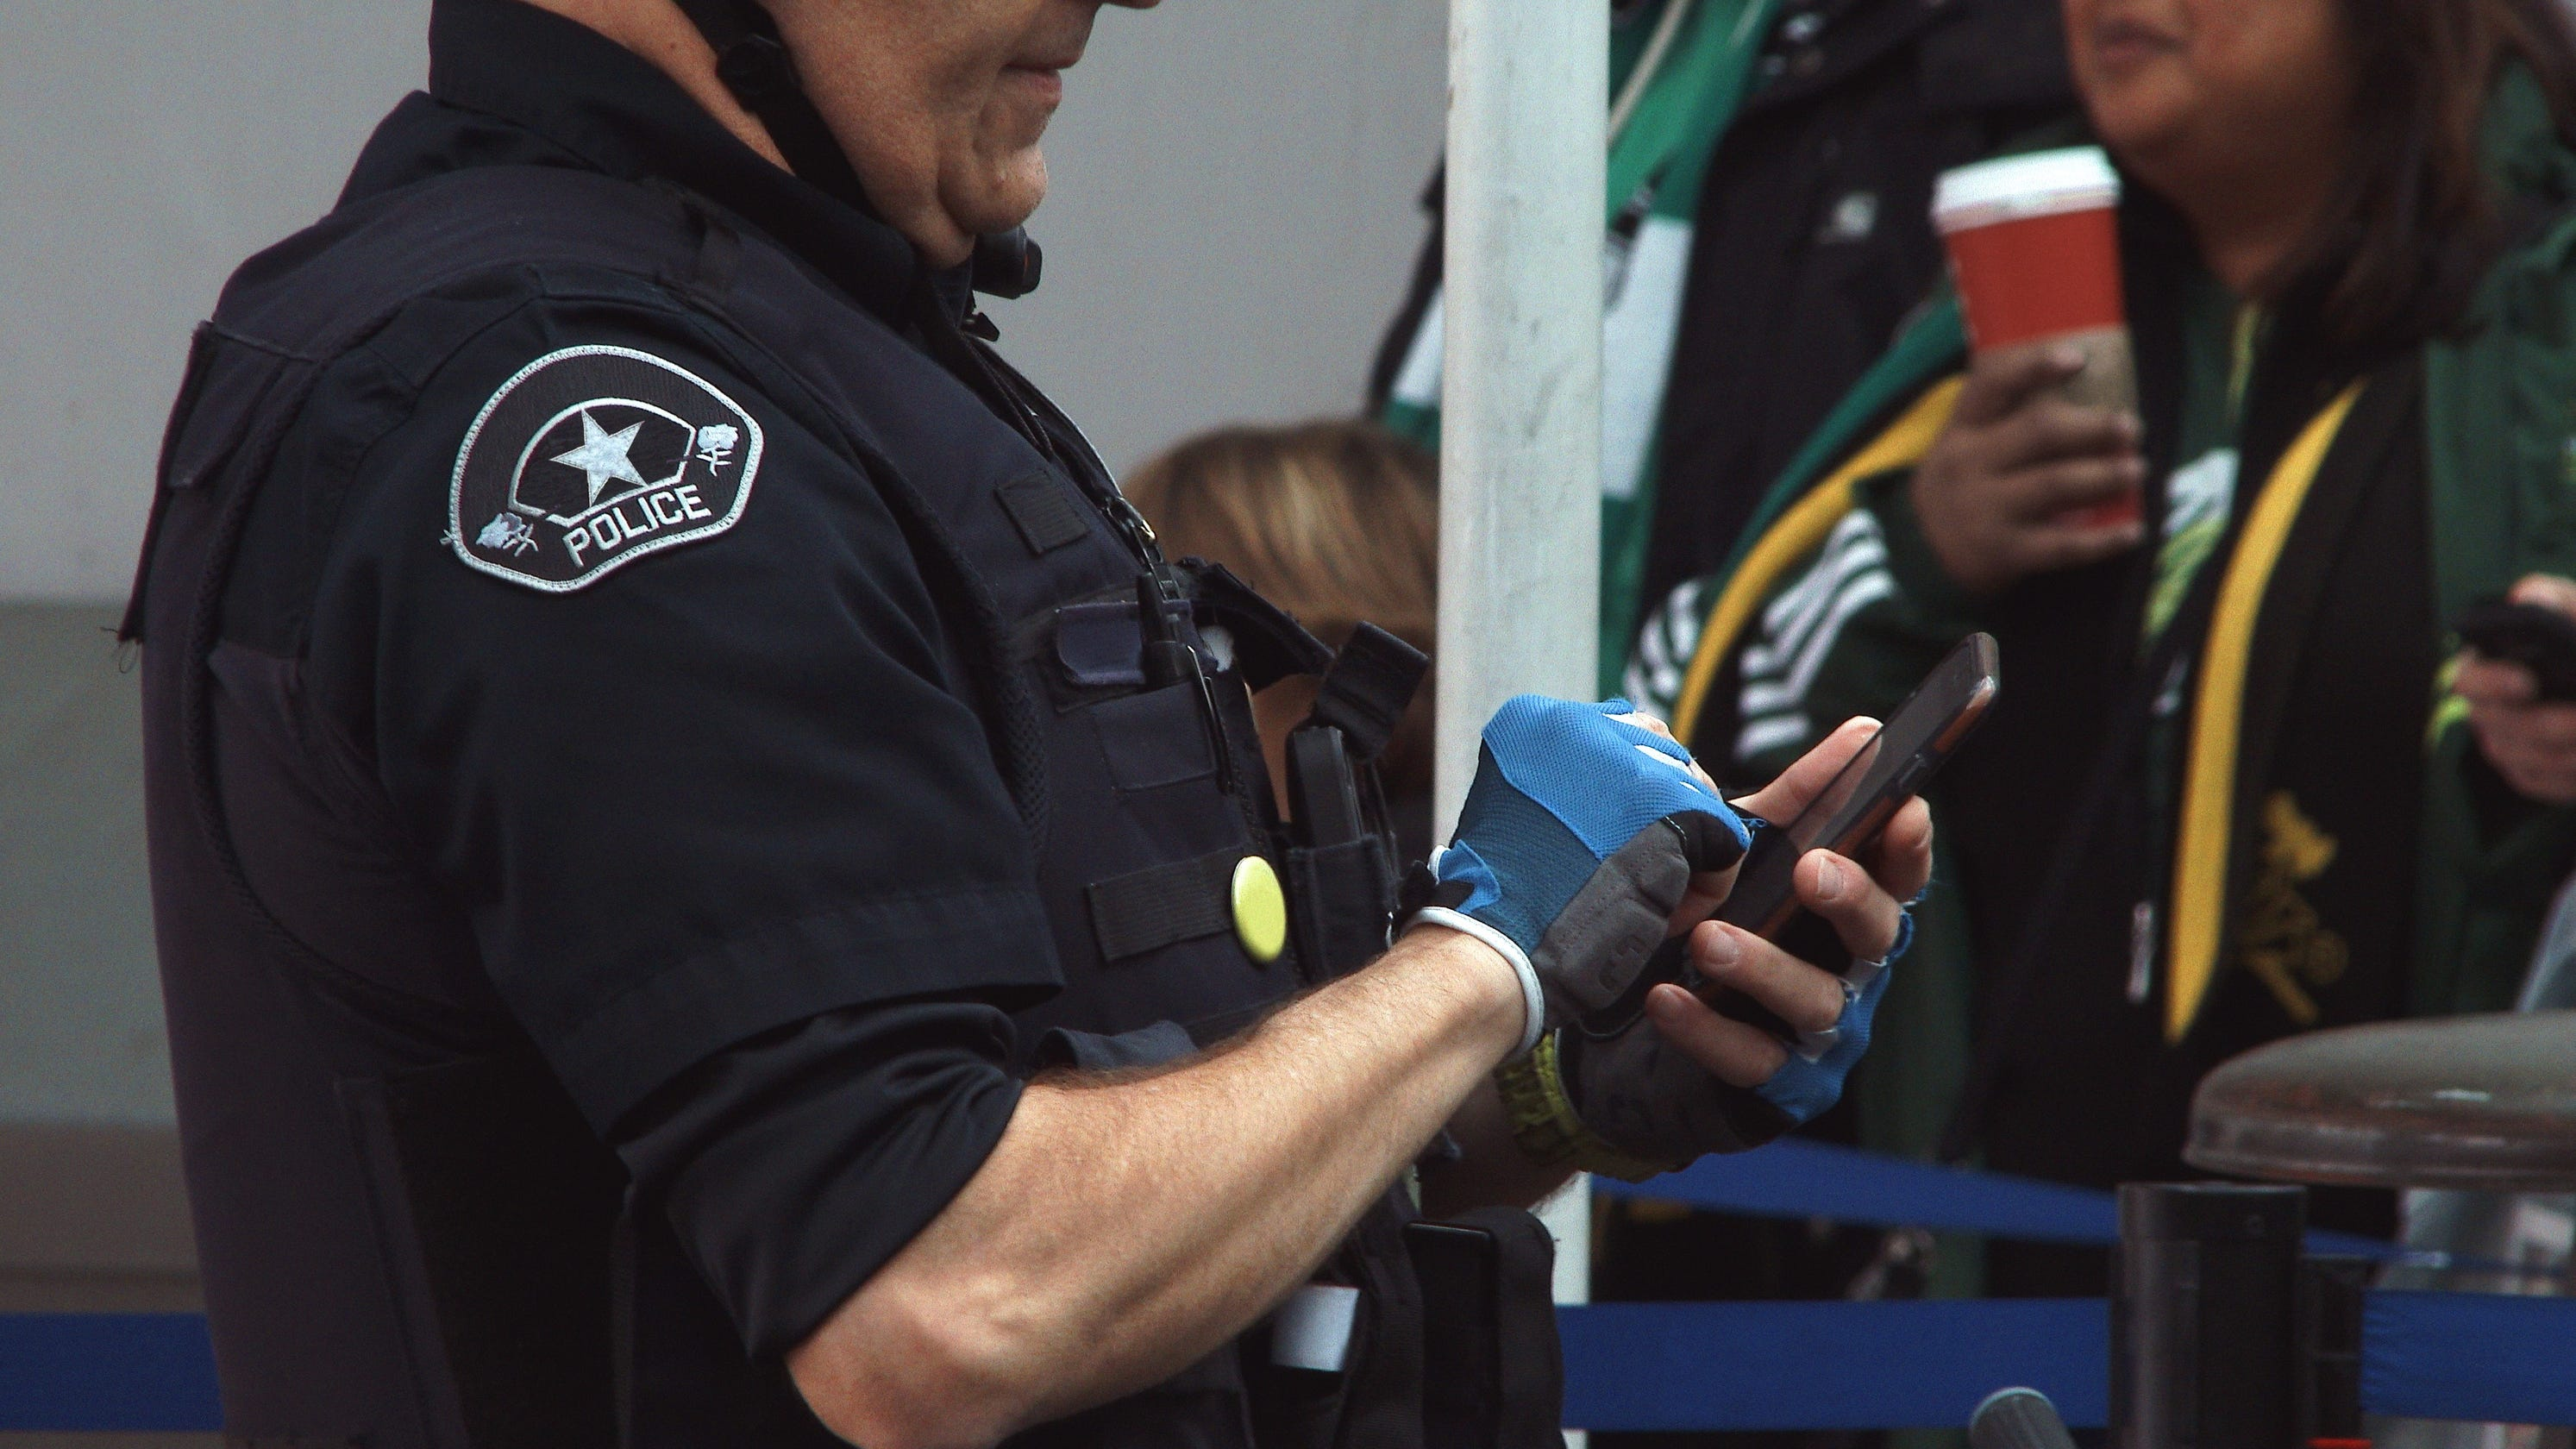 T-Mobile sees pandemic as opportunity to connect with first-responders with free...